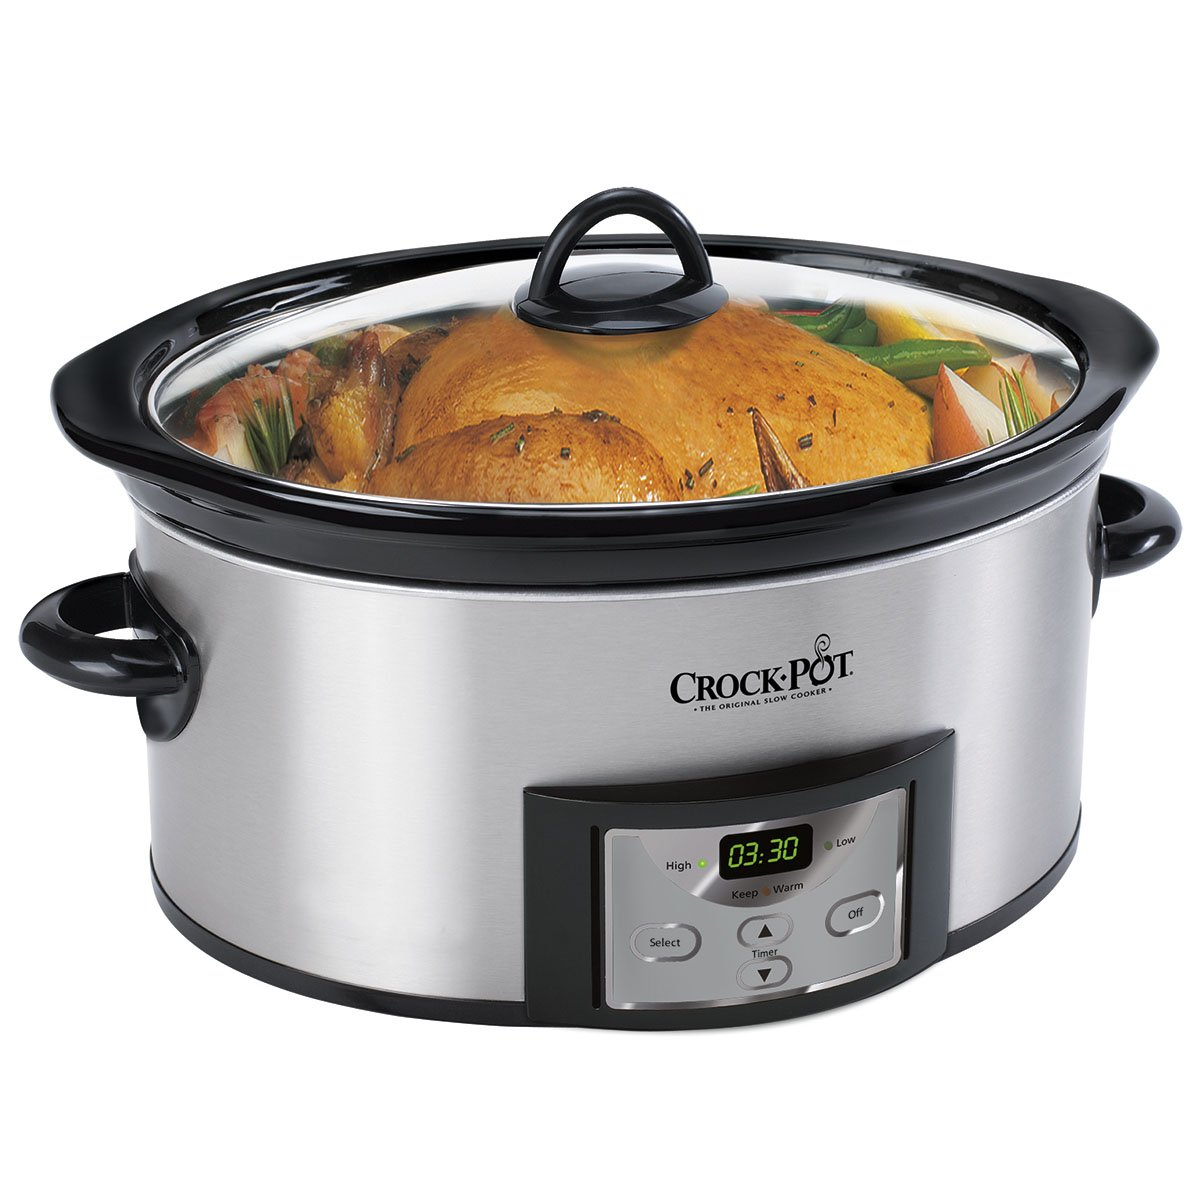 Crock-Pot® 6 Qt High Polish Slow Cooker - Stainless Steel